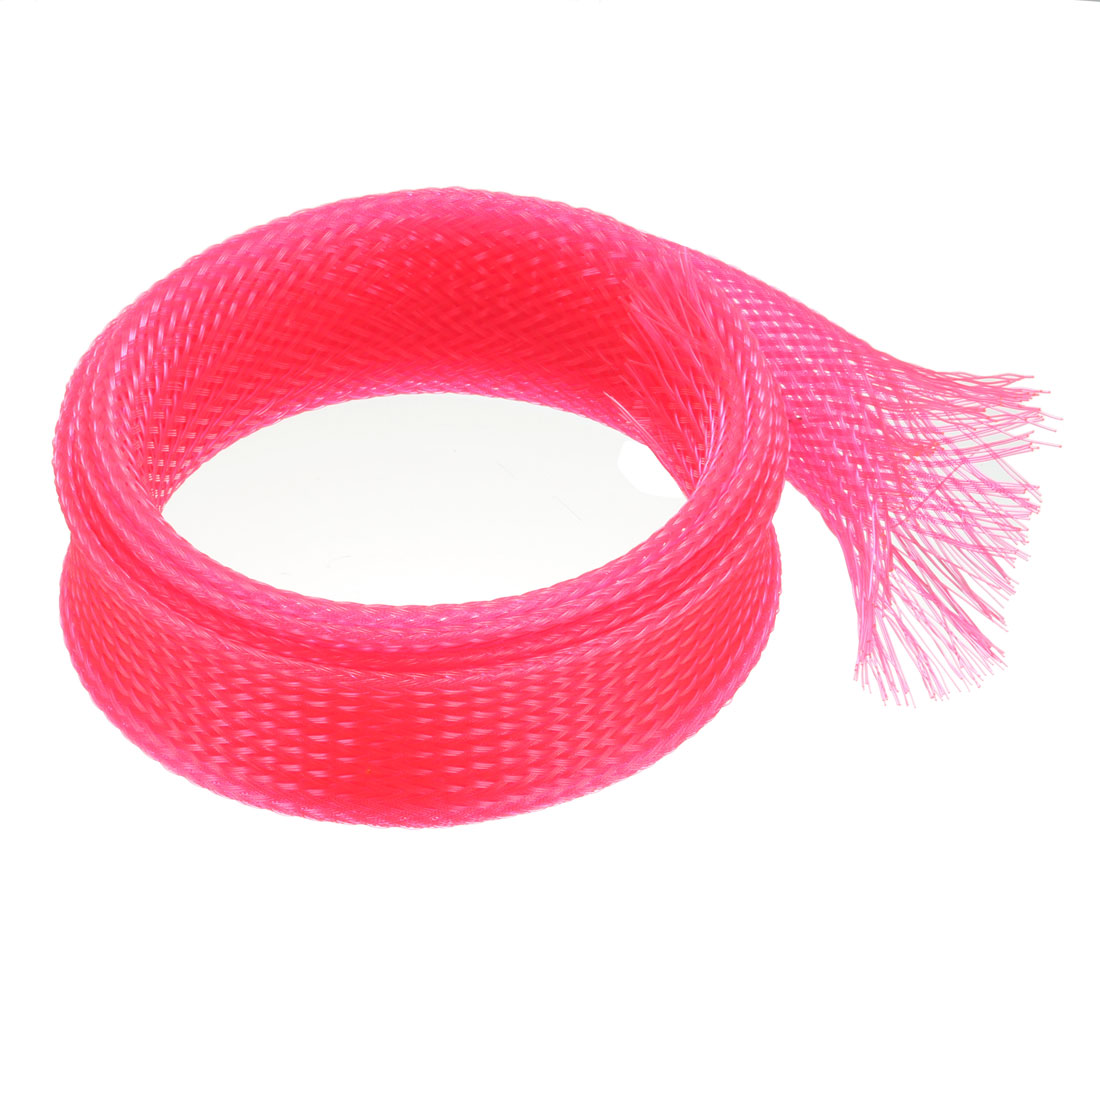 25mm Dia Tight Braided PET Expandable Sleeving Cable Wire Wrap Sheath Pink 1M